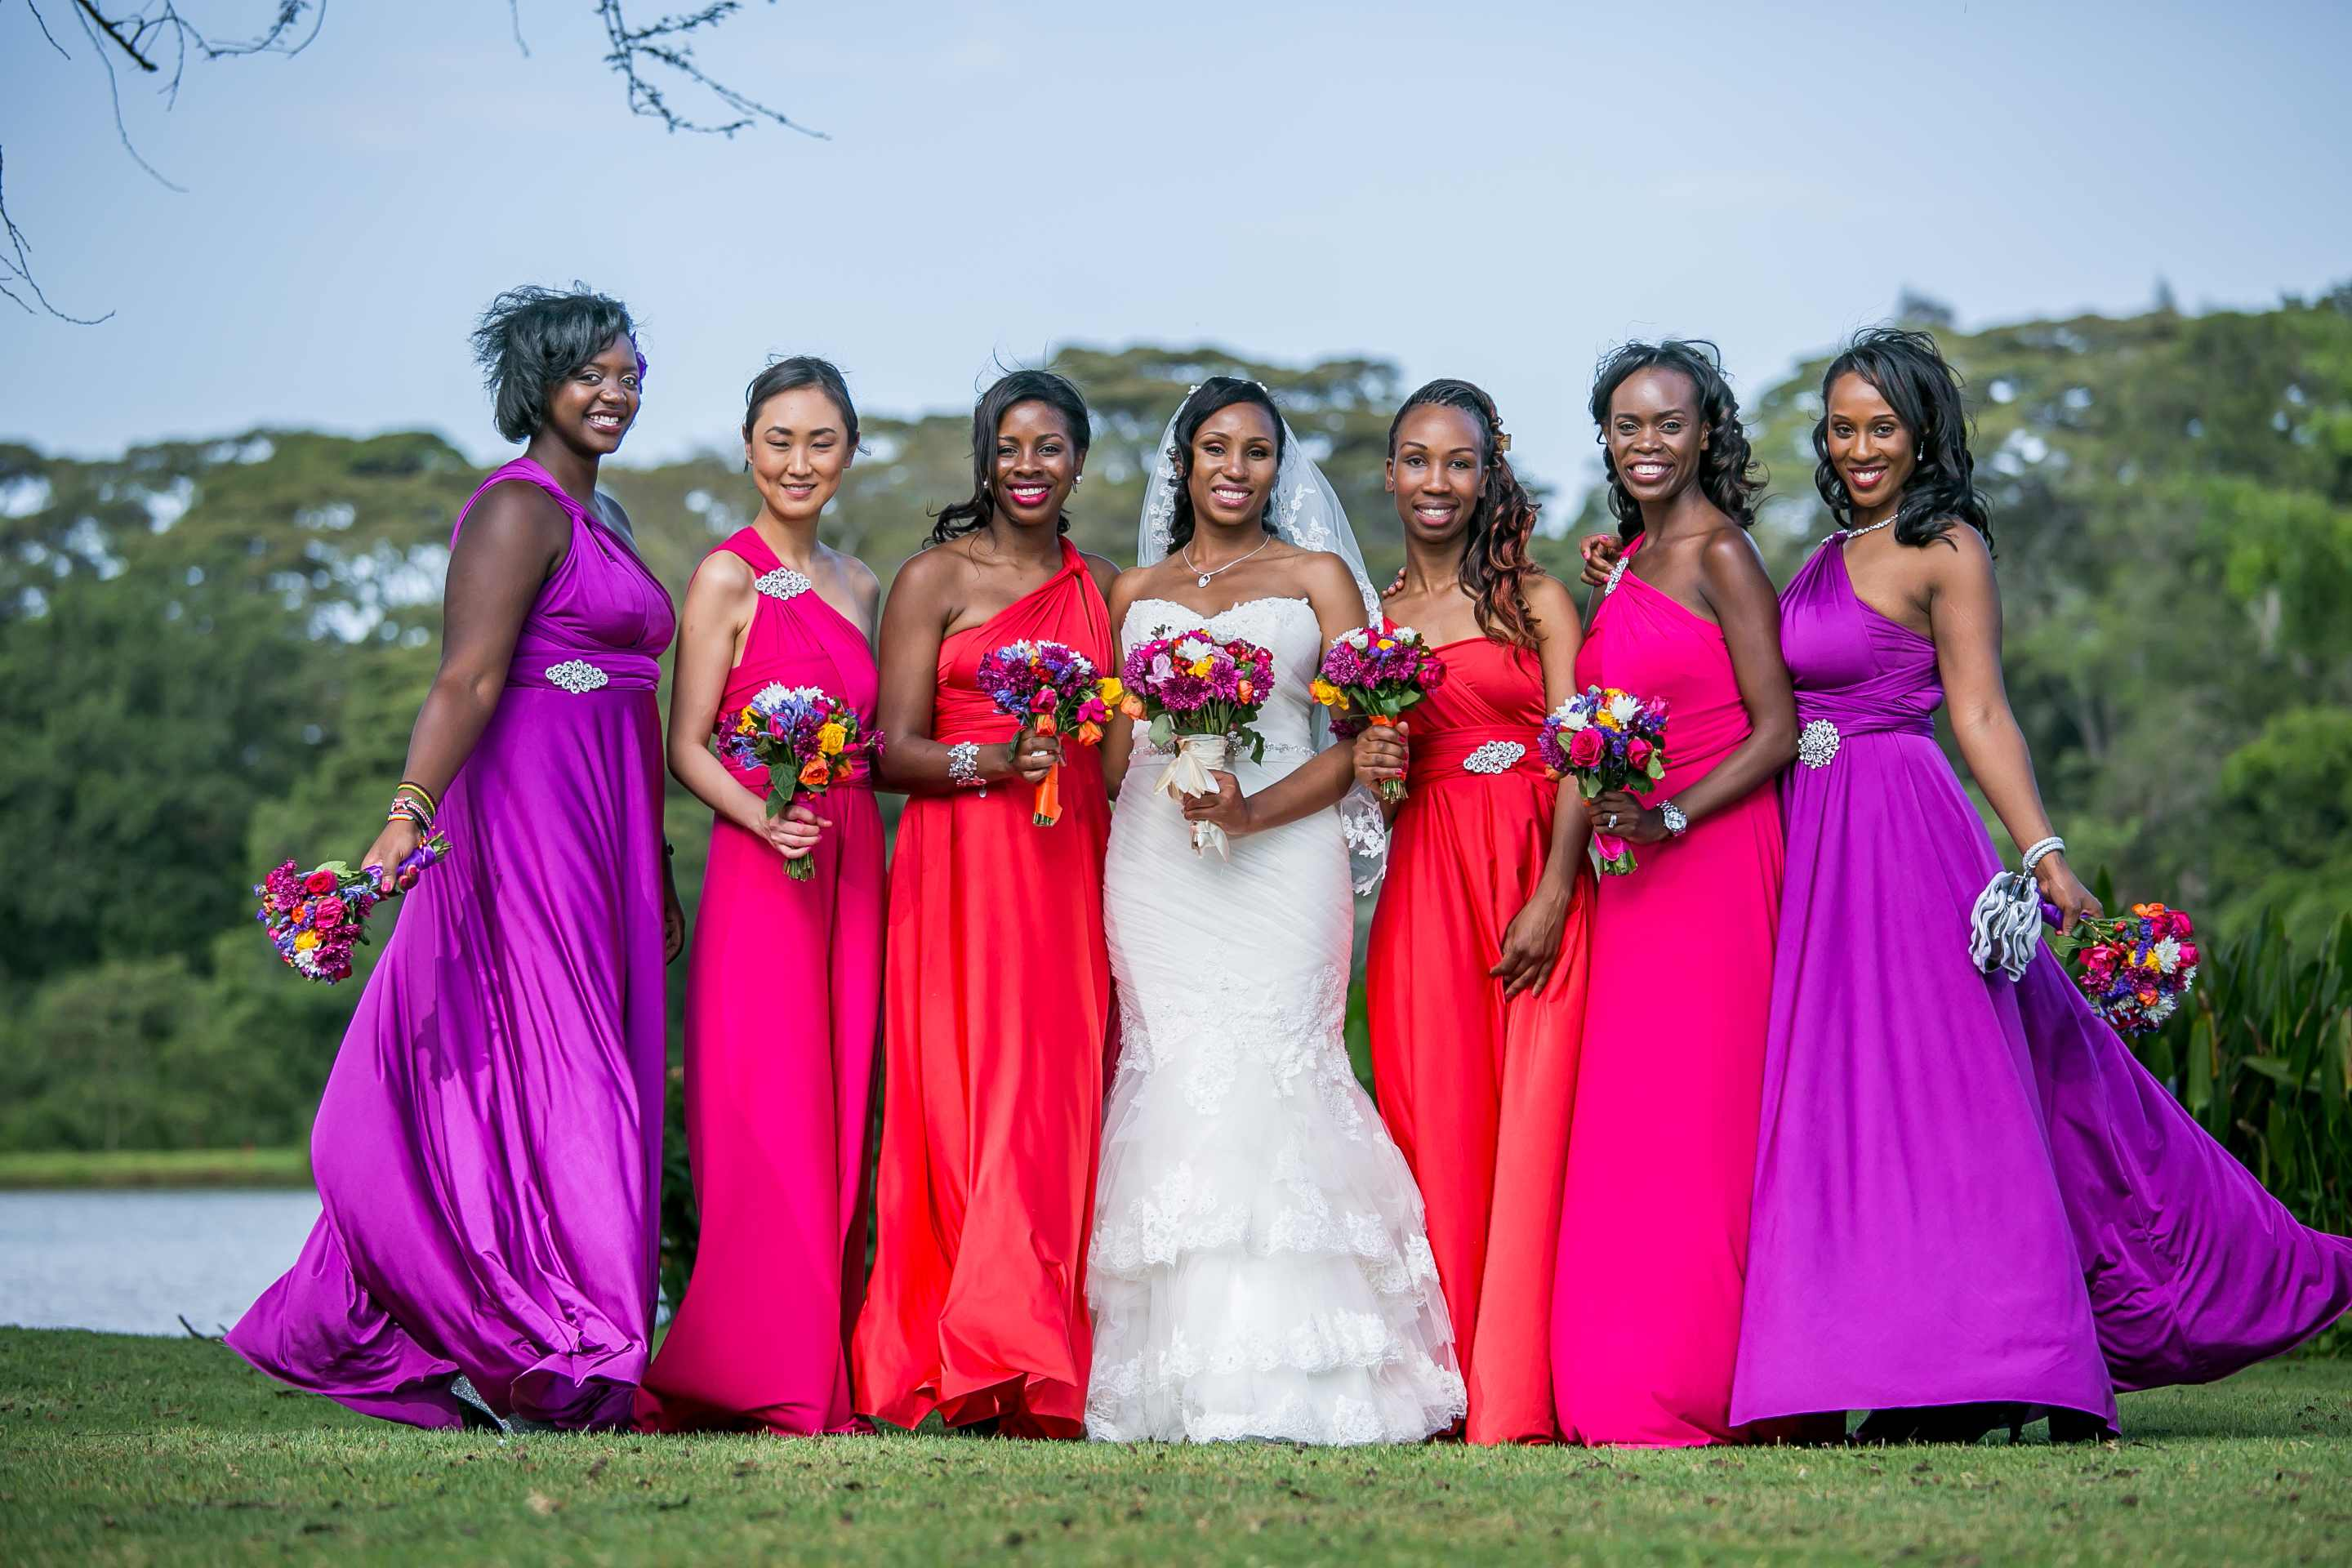 How to choose bridesmaids dresses samanthasbridal d1a2202 ombrellifo Gallery